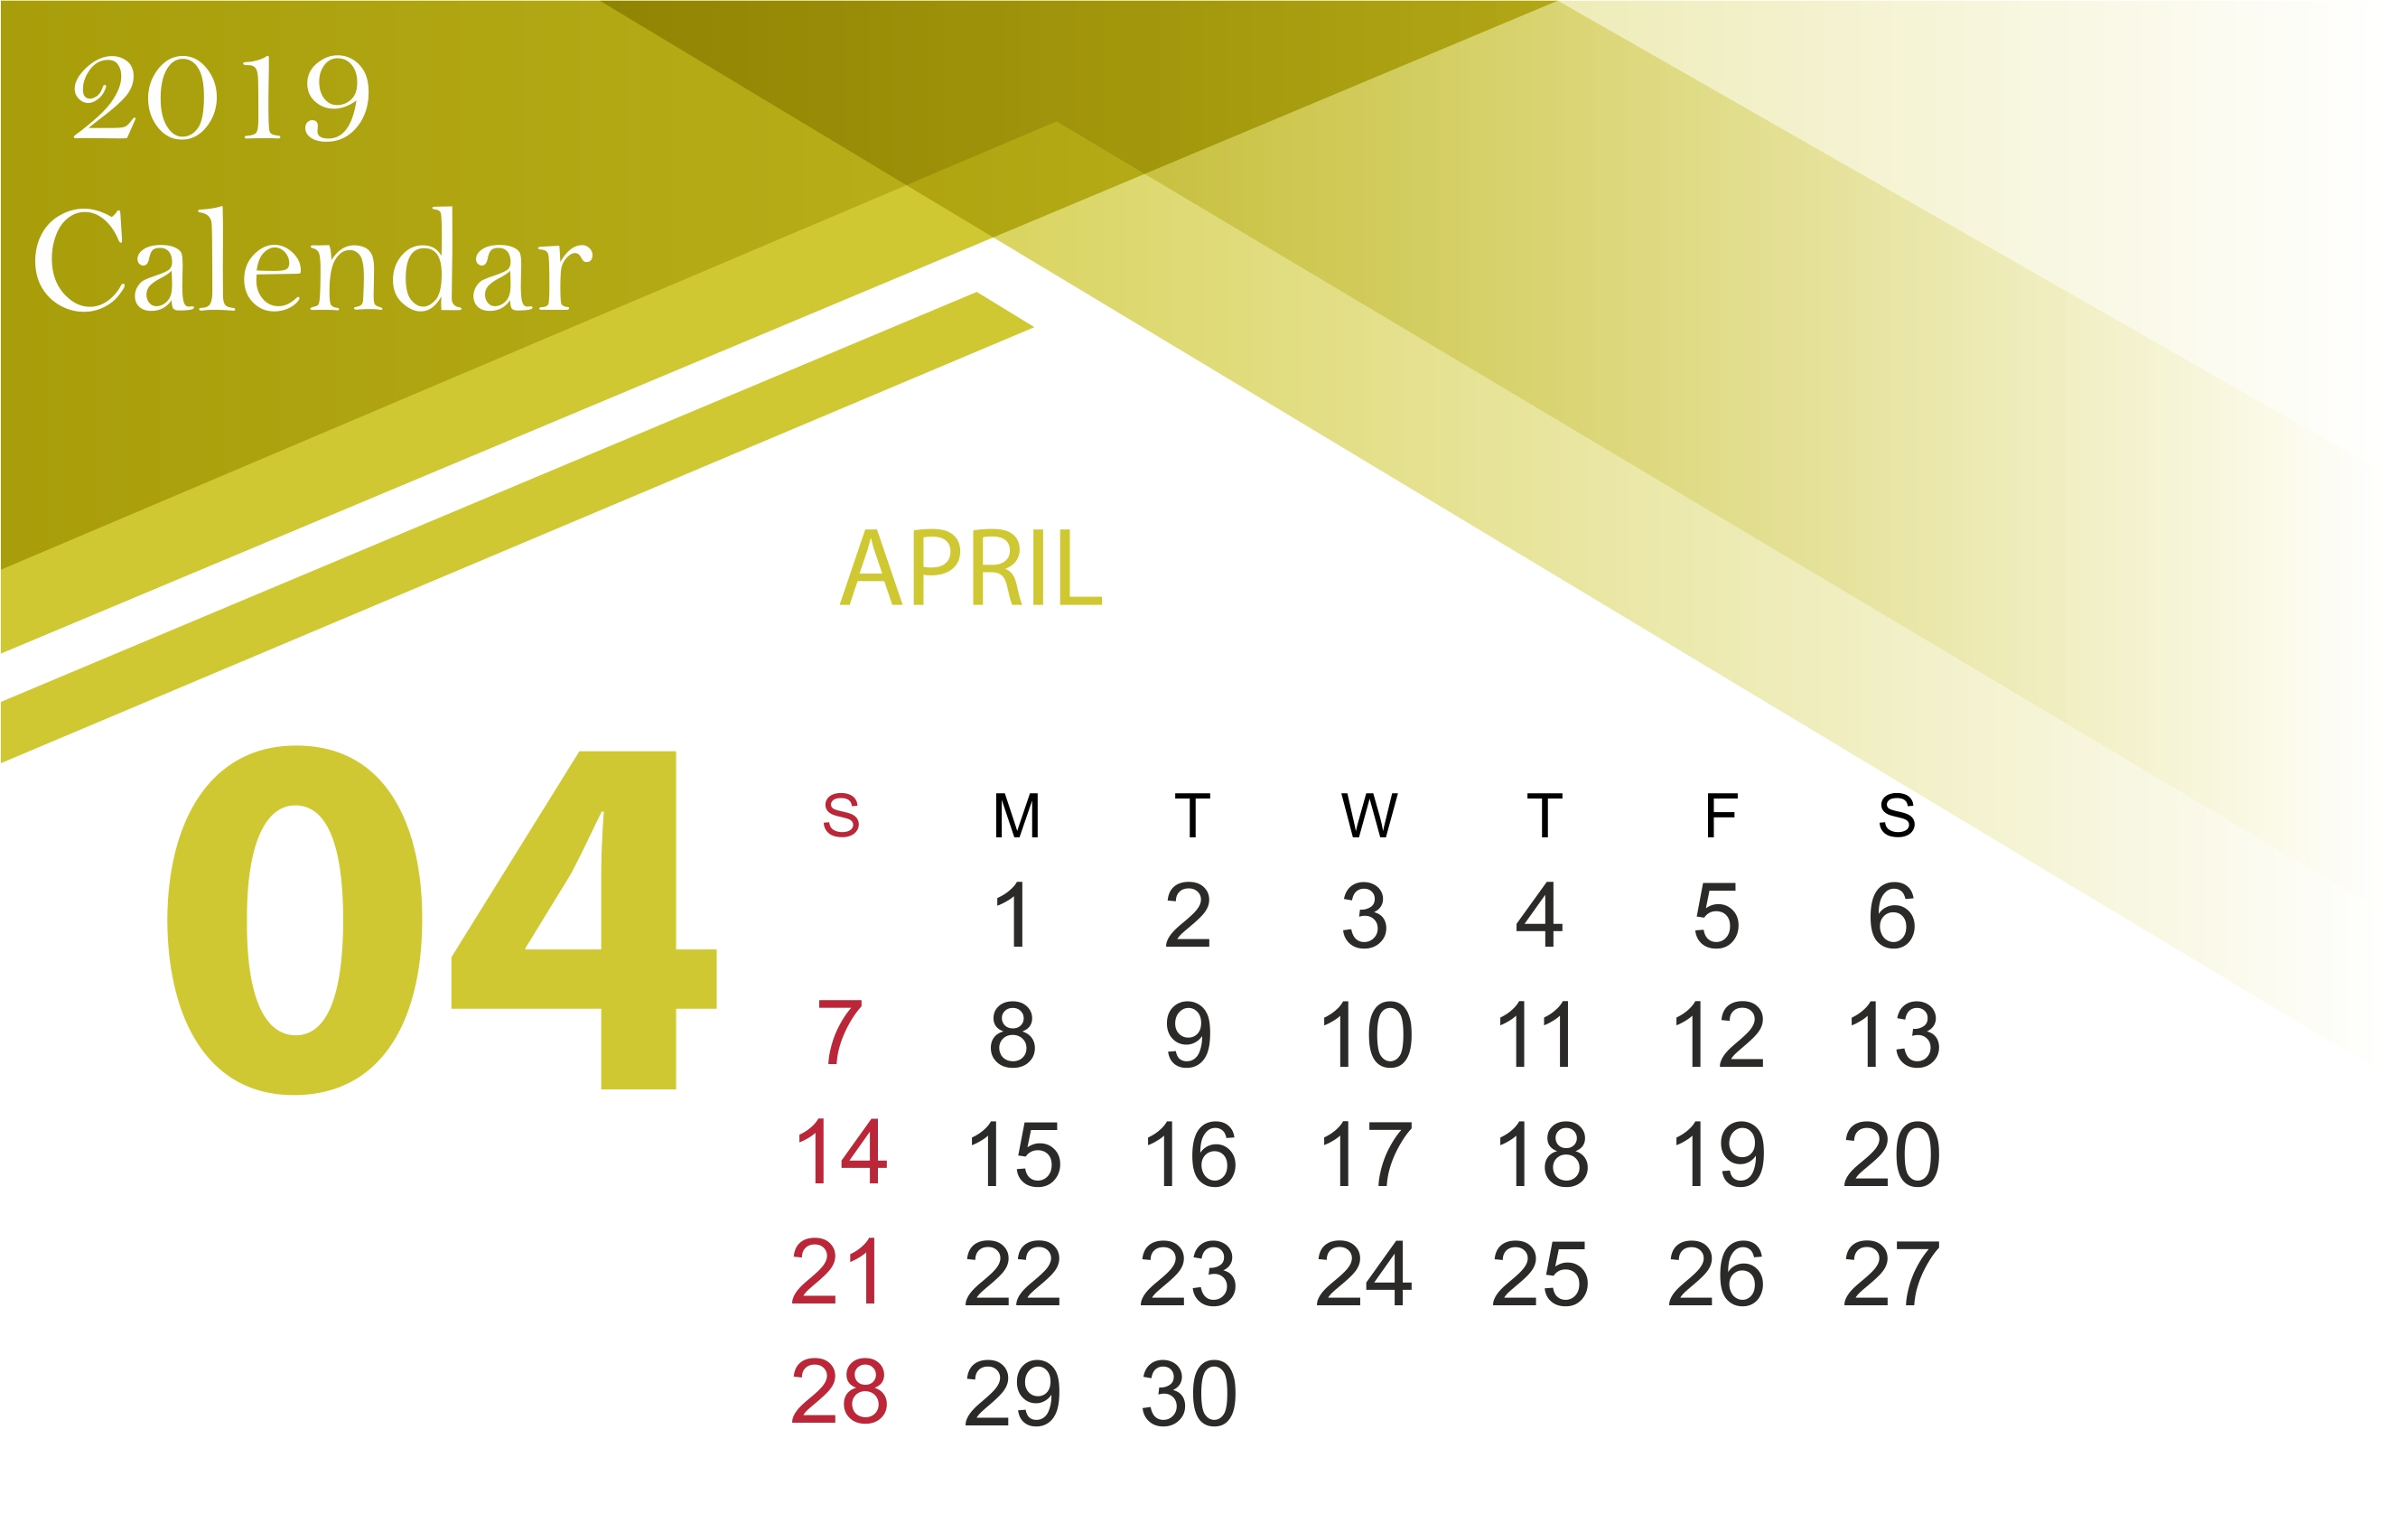 April 2019 Calendar Printable [Free] | Site Provides Calendar Calendar April 6 2019